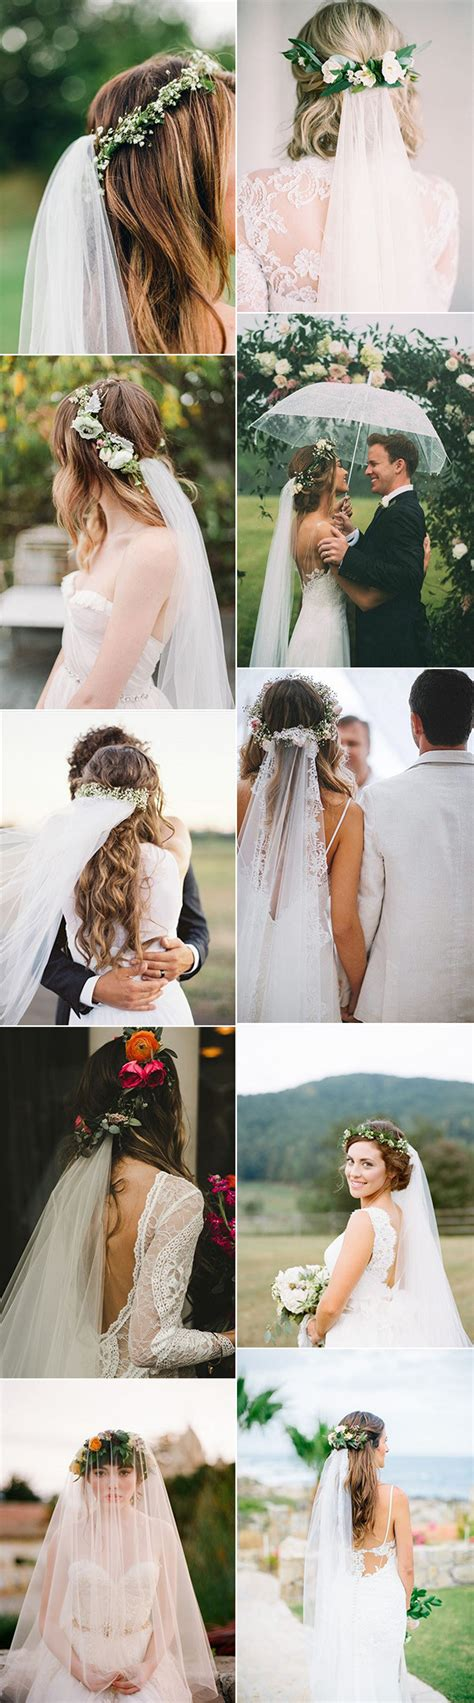 wedding hairstyles with crown and veil top 10 wedding hairstyles with flower crown veil for 2018